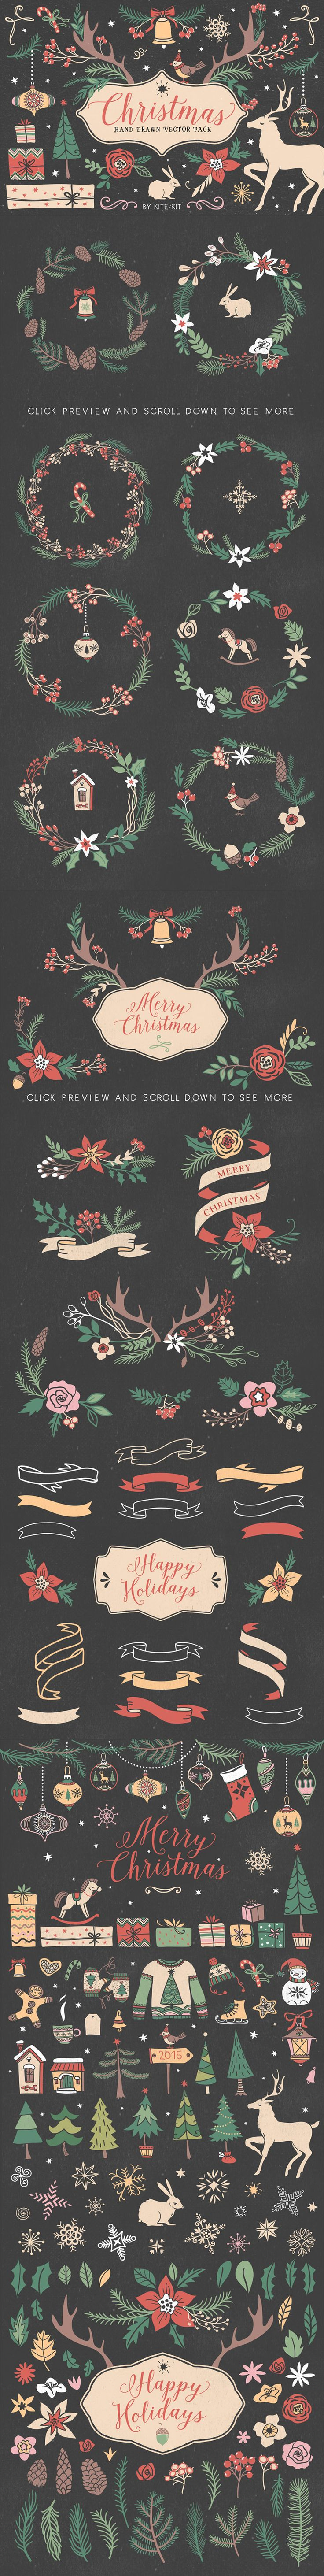 If I could choose just one Christmas vector pack to have, this would be my first choice :)